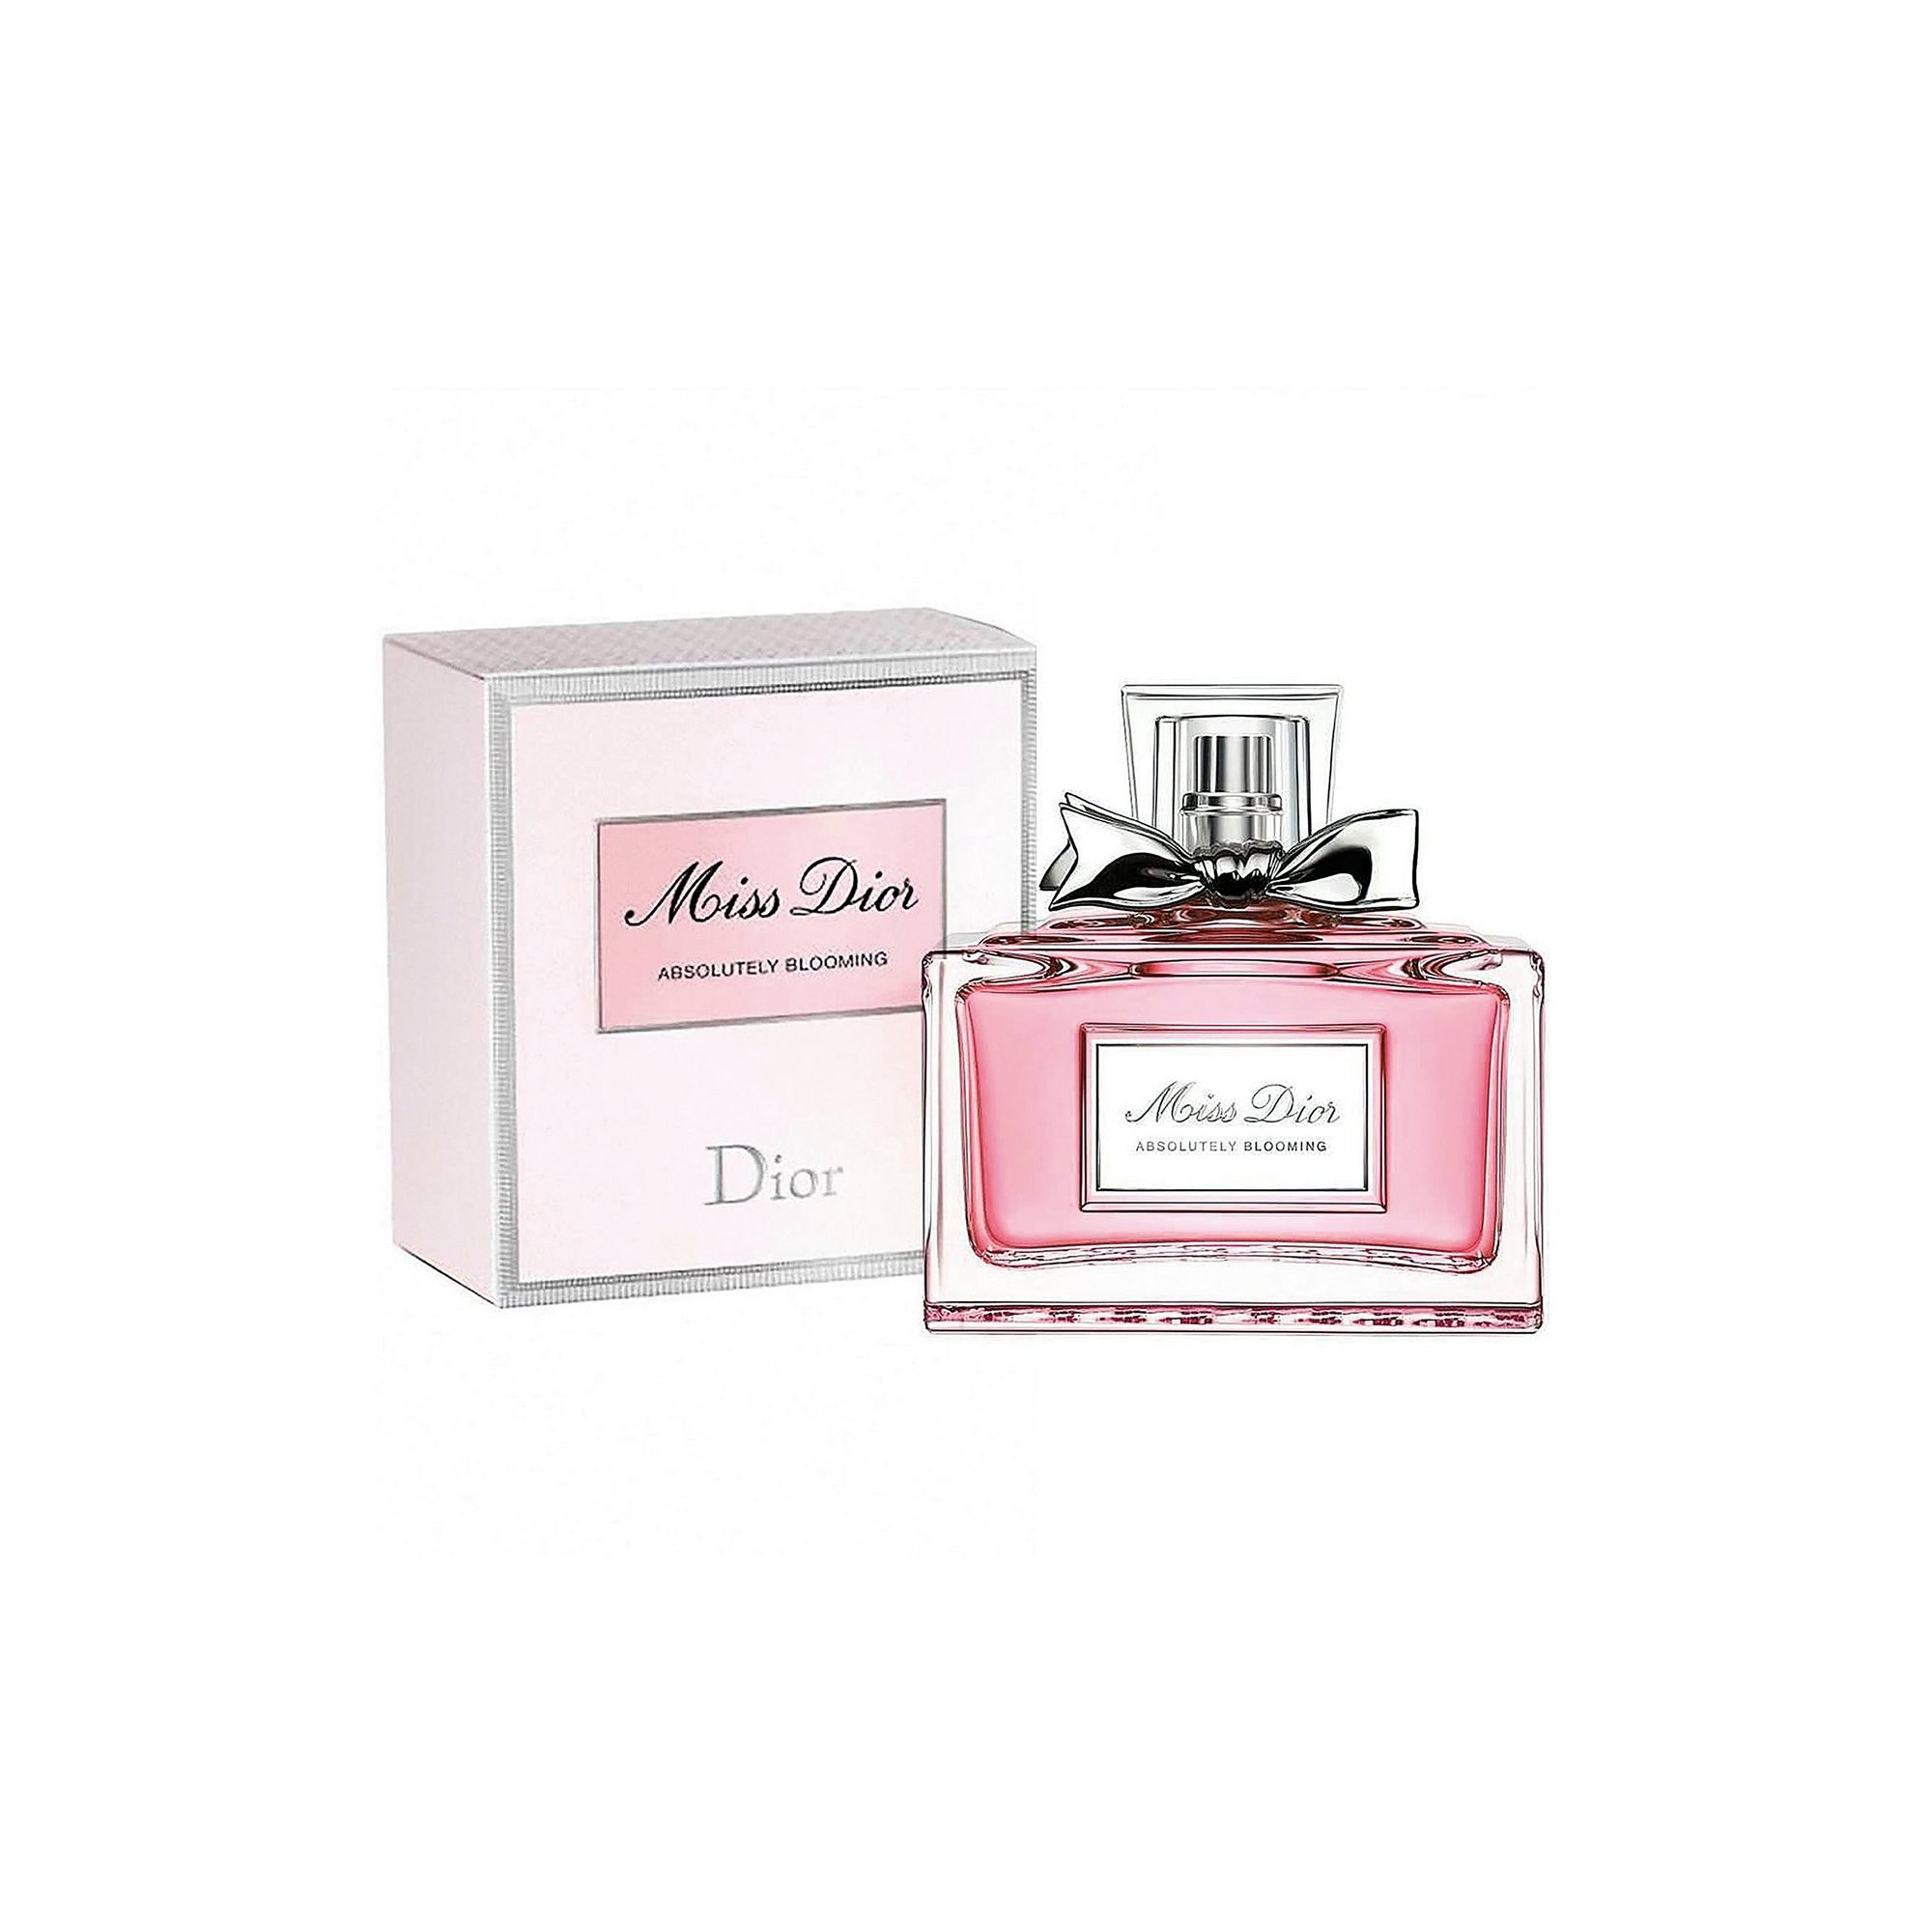 Image of Miss Dior Absolutely Blooming 50ml EDP